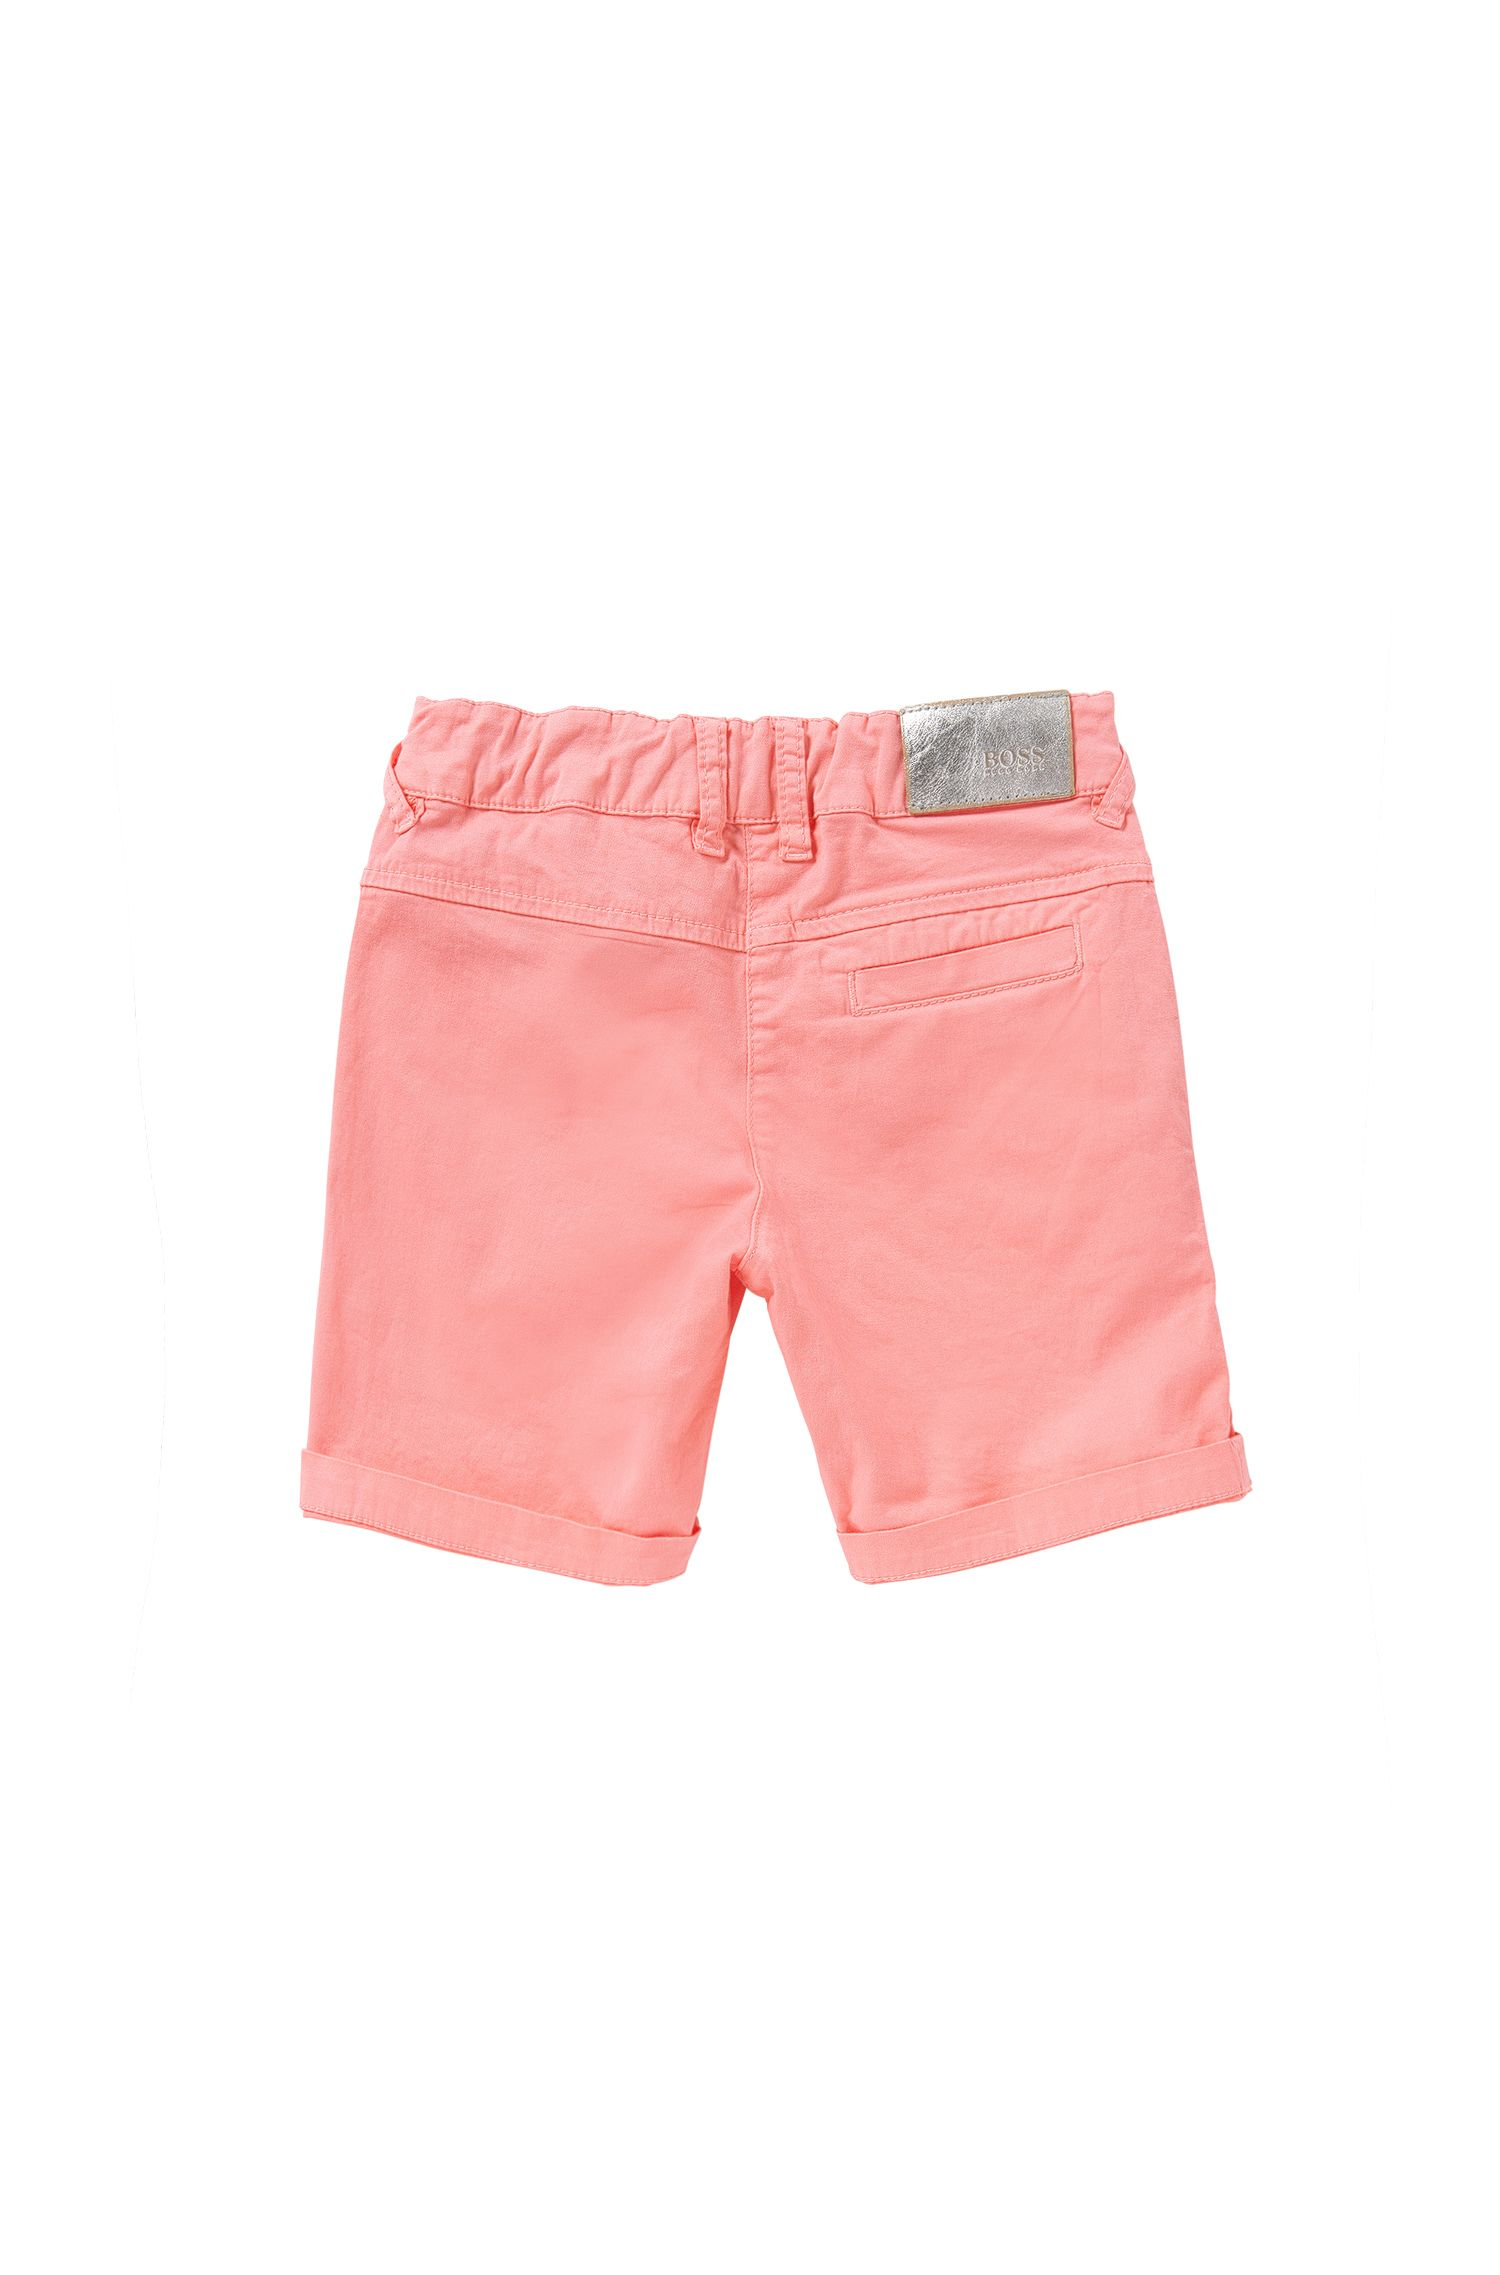 Regular-Fit Kids-Shorts aus Baumwolle mit Schleifen-Detail: 'J24410'